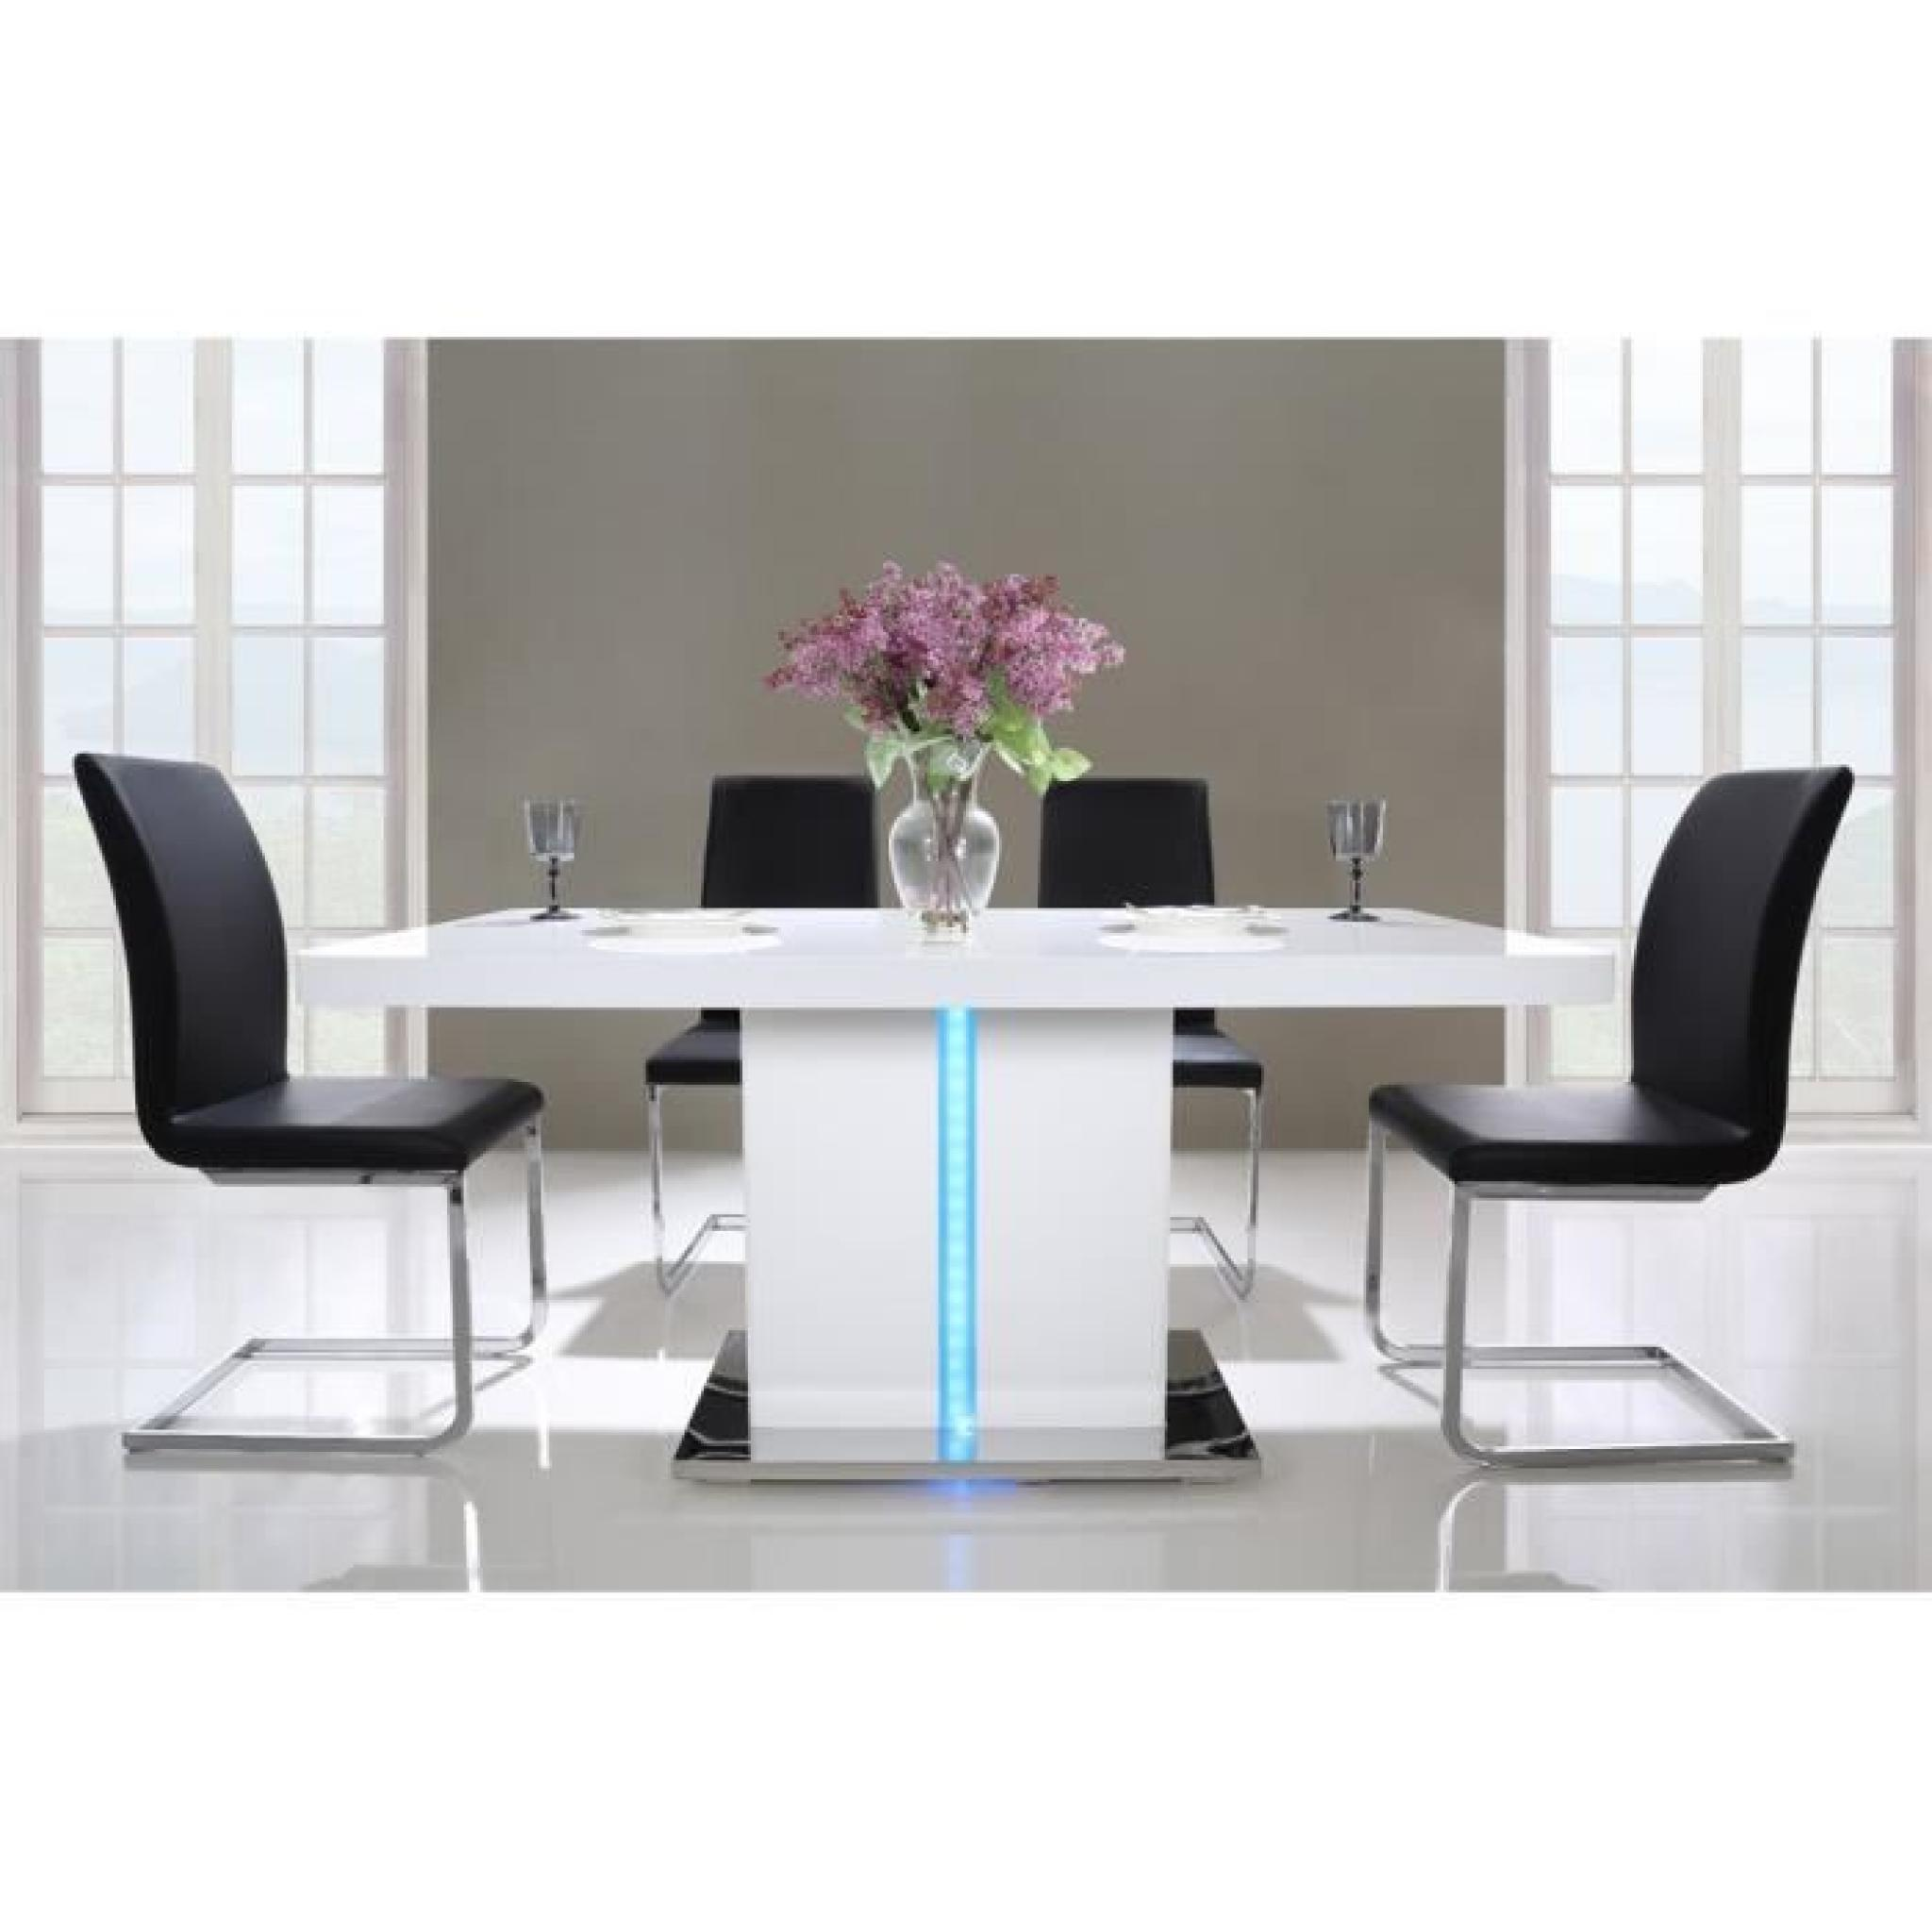 Laser table manger 160cm laqu blanc brillant avec led for Table salle a manger design laque blanc